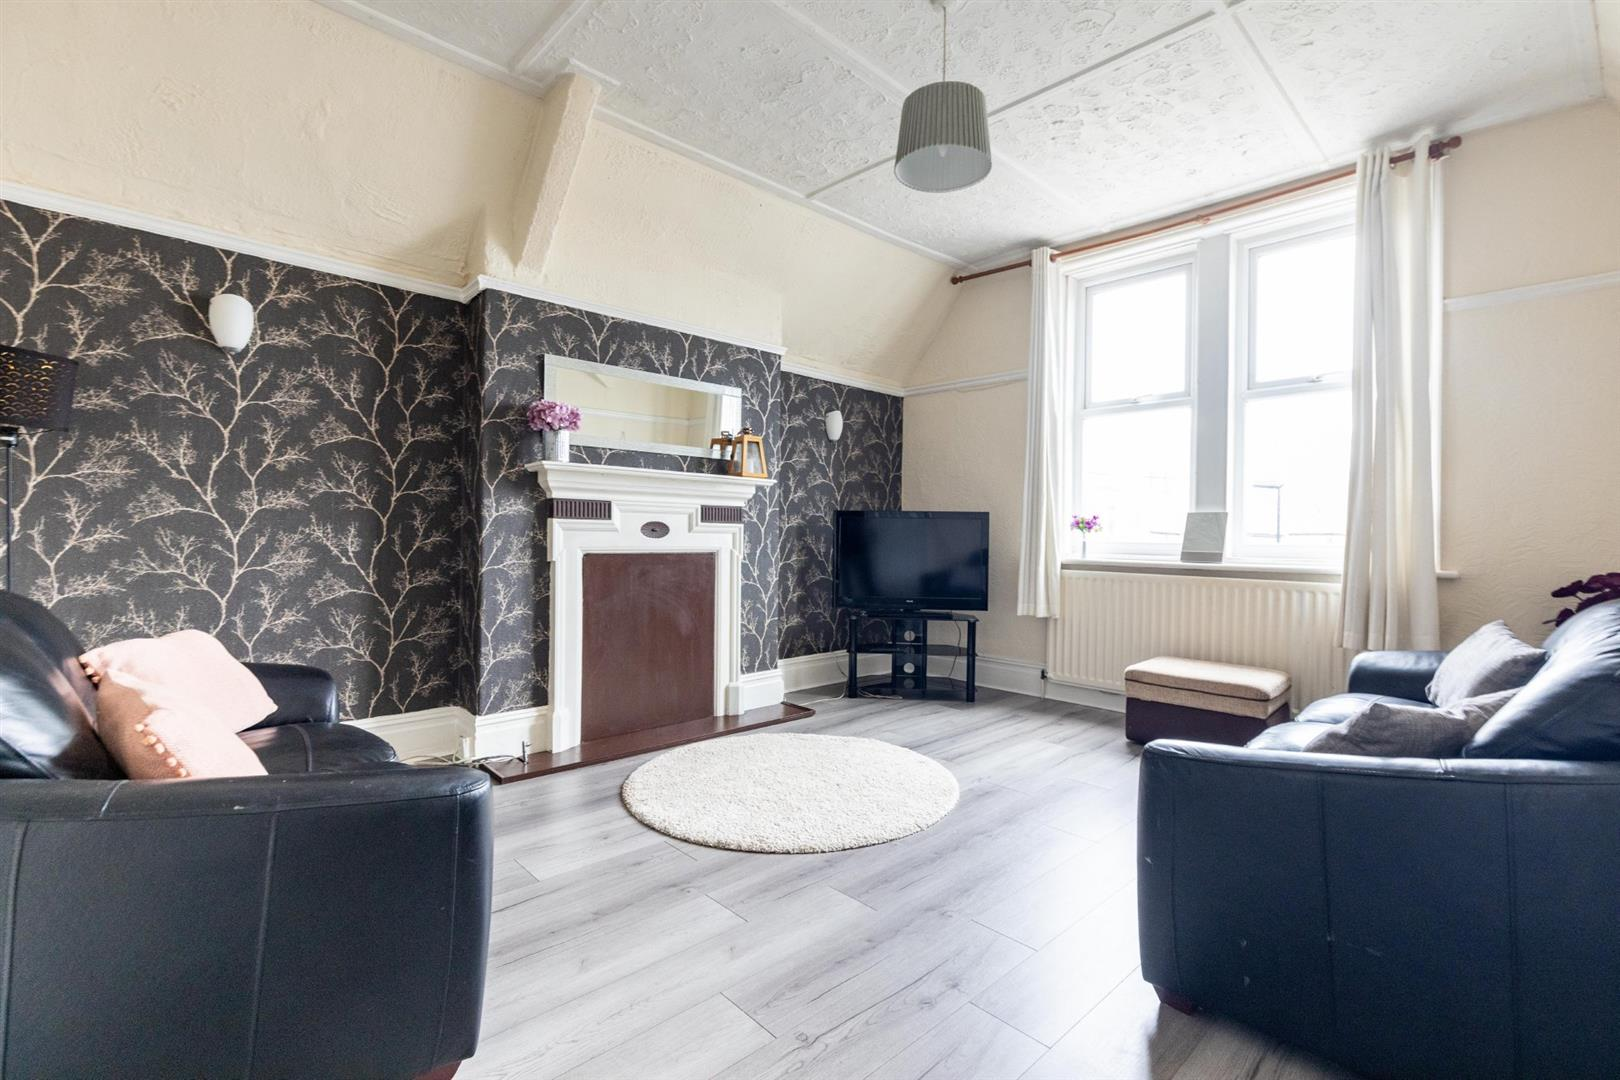 1 bed flat to rent in Gosforth, NE3 4RQ, NE3